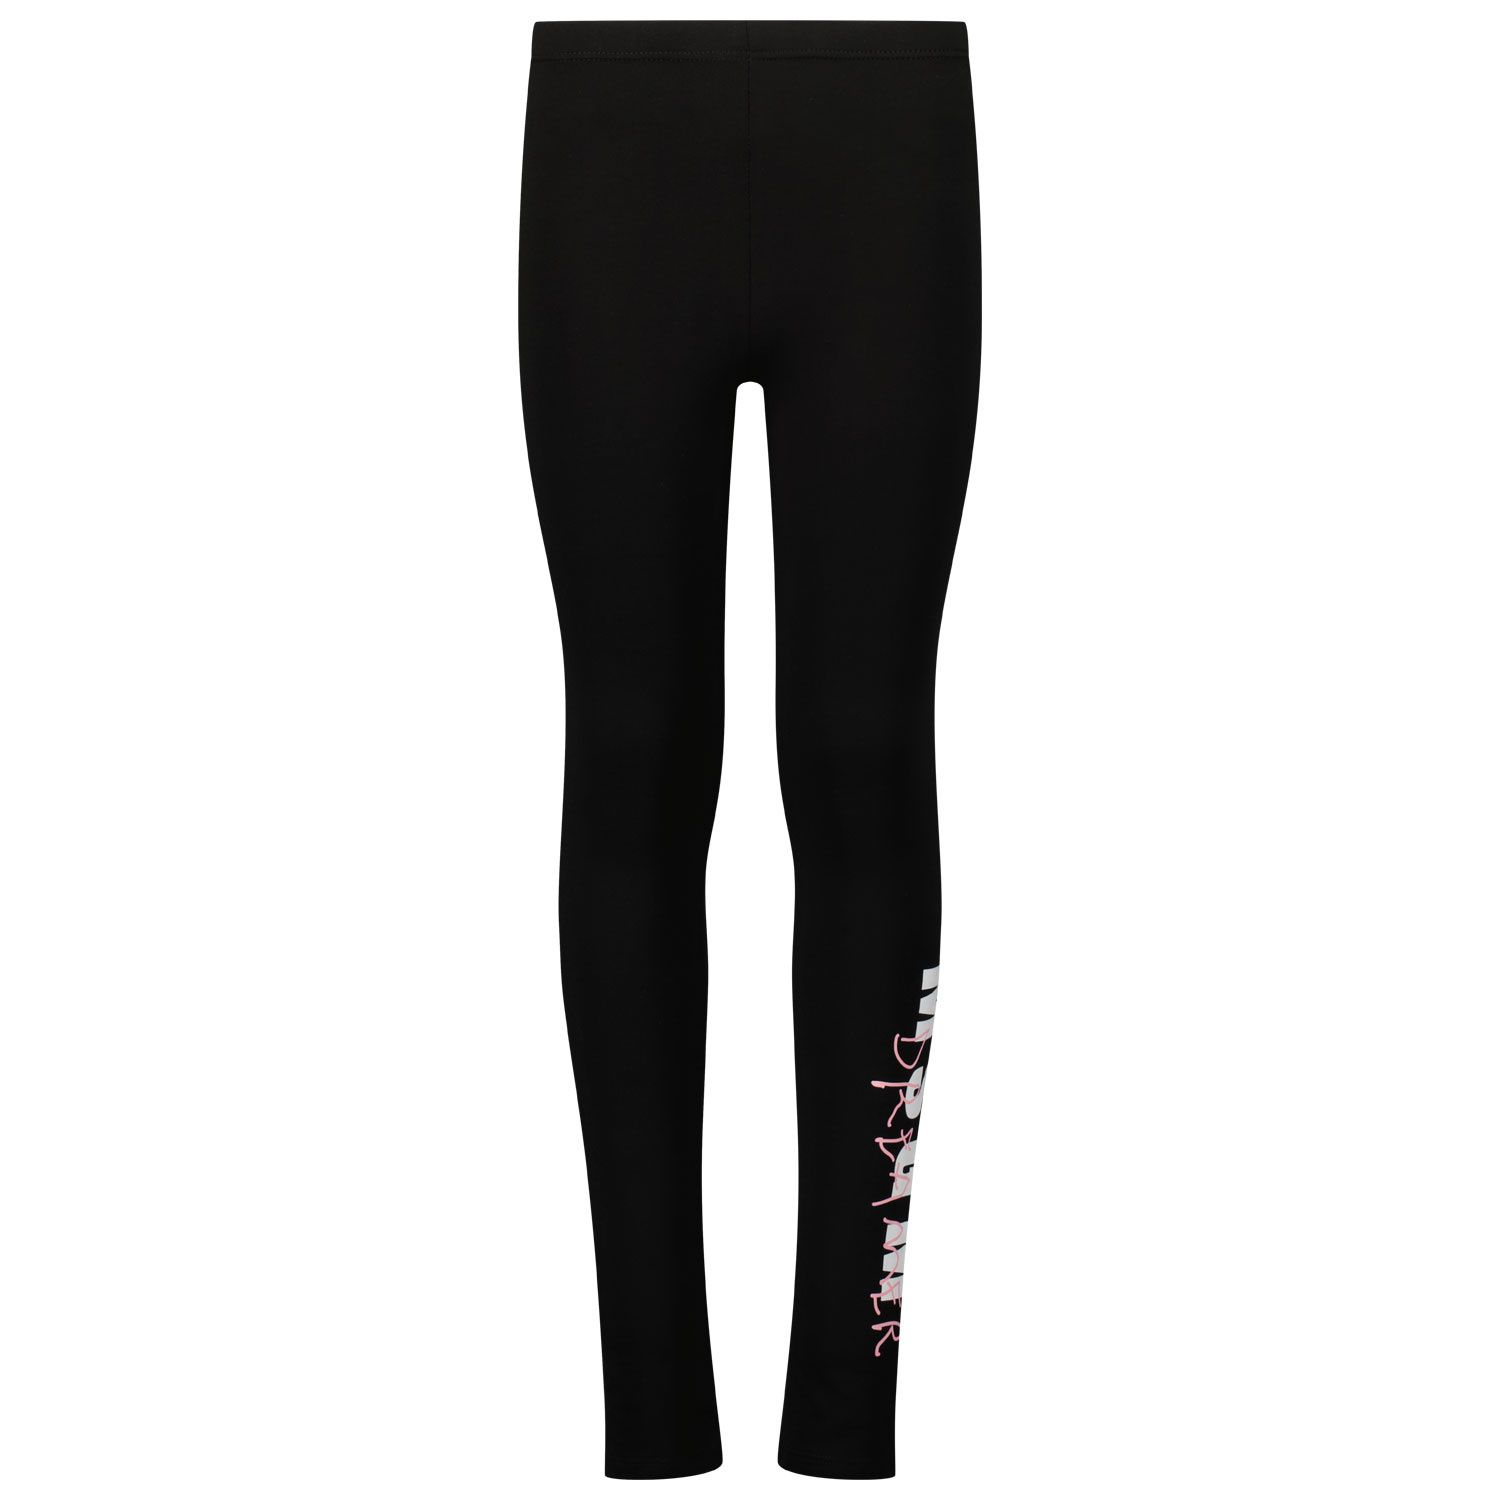 Picture of MSGM 27811 kids tights black